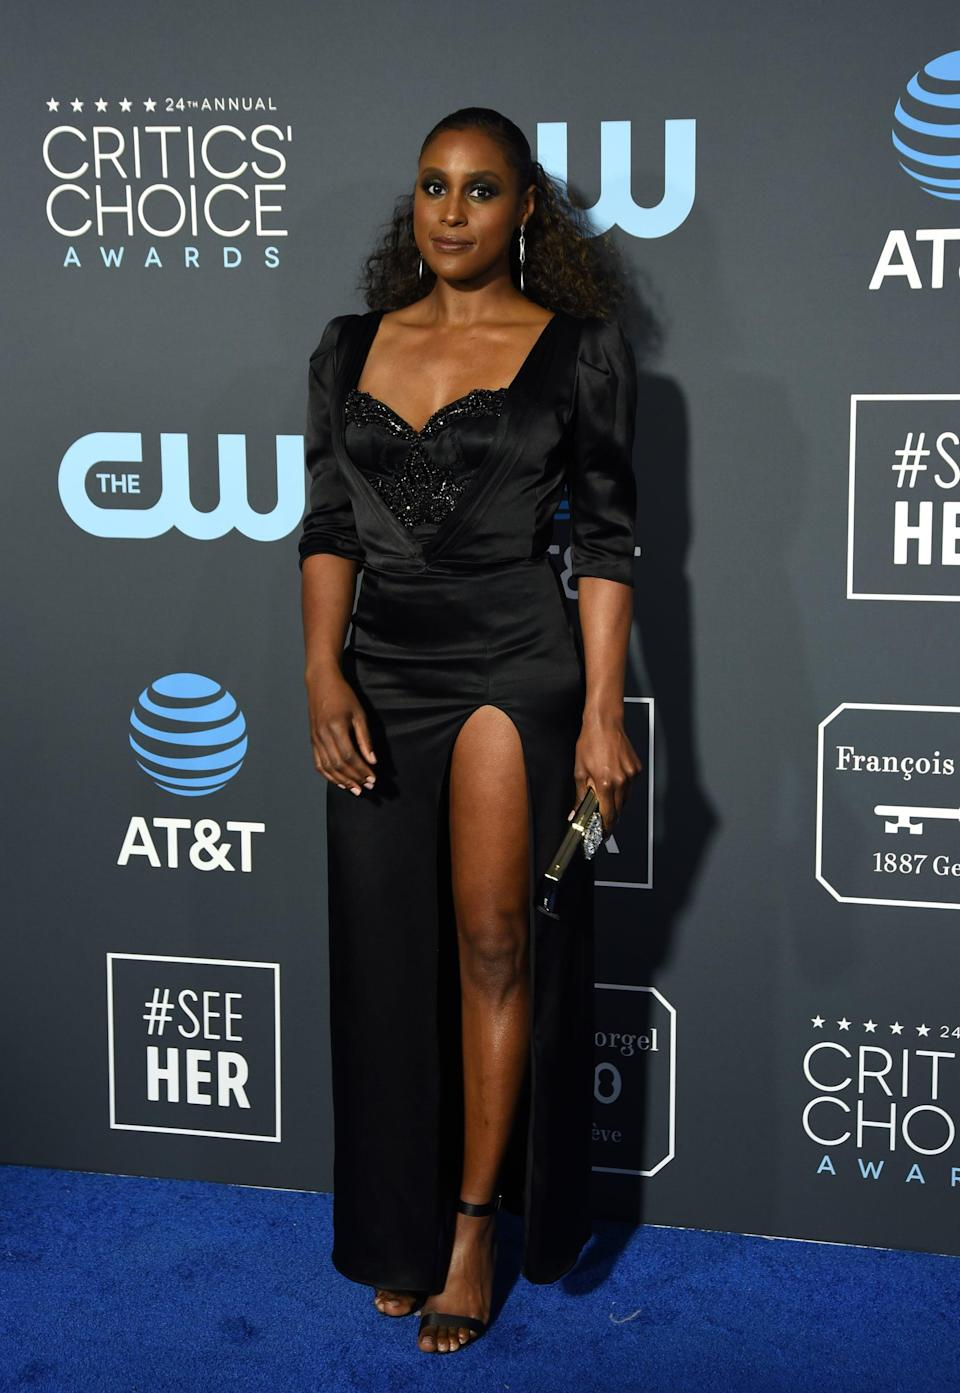 <p>Issa Rae wearing a black dress with a daring thigh-high slit by Aliétte by Jason Rembert. She accessorized with Lorraine Schwartz jewels and Tamara Mellon heels.</p>